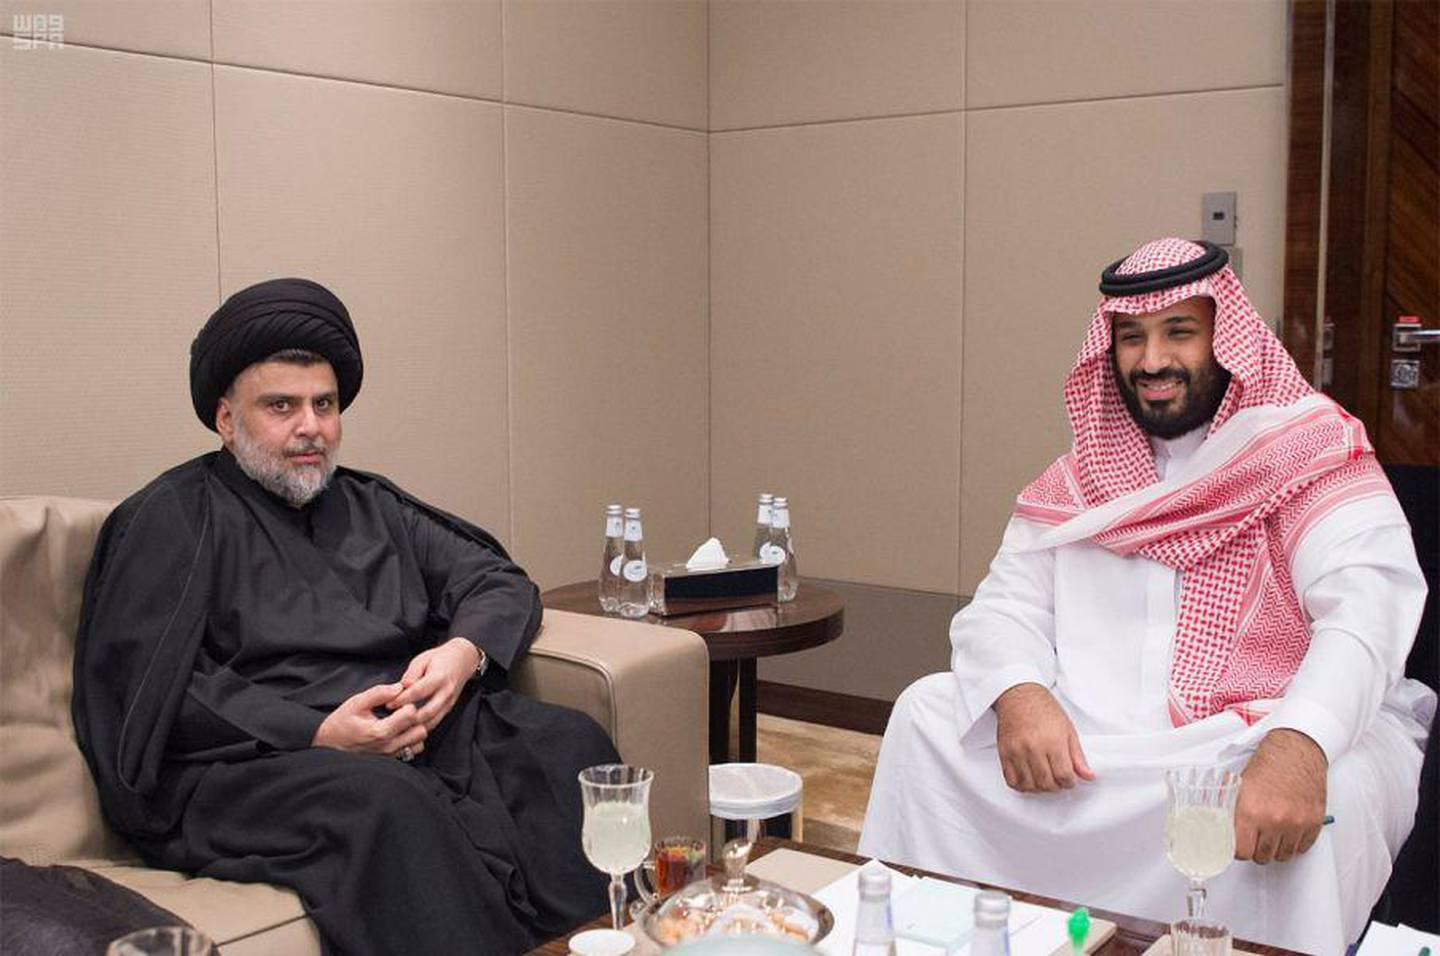 In this Sunday, July 30, 2017 photo released by Saudi Press Agency, SPA, Shiite cleric Muqtada al-Sadr, left, meets with Saudi Crown Prince Mohammed bin Salman in Jiddah, Saudi Arabia. (Saudi Press Agency via AP)